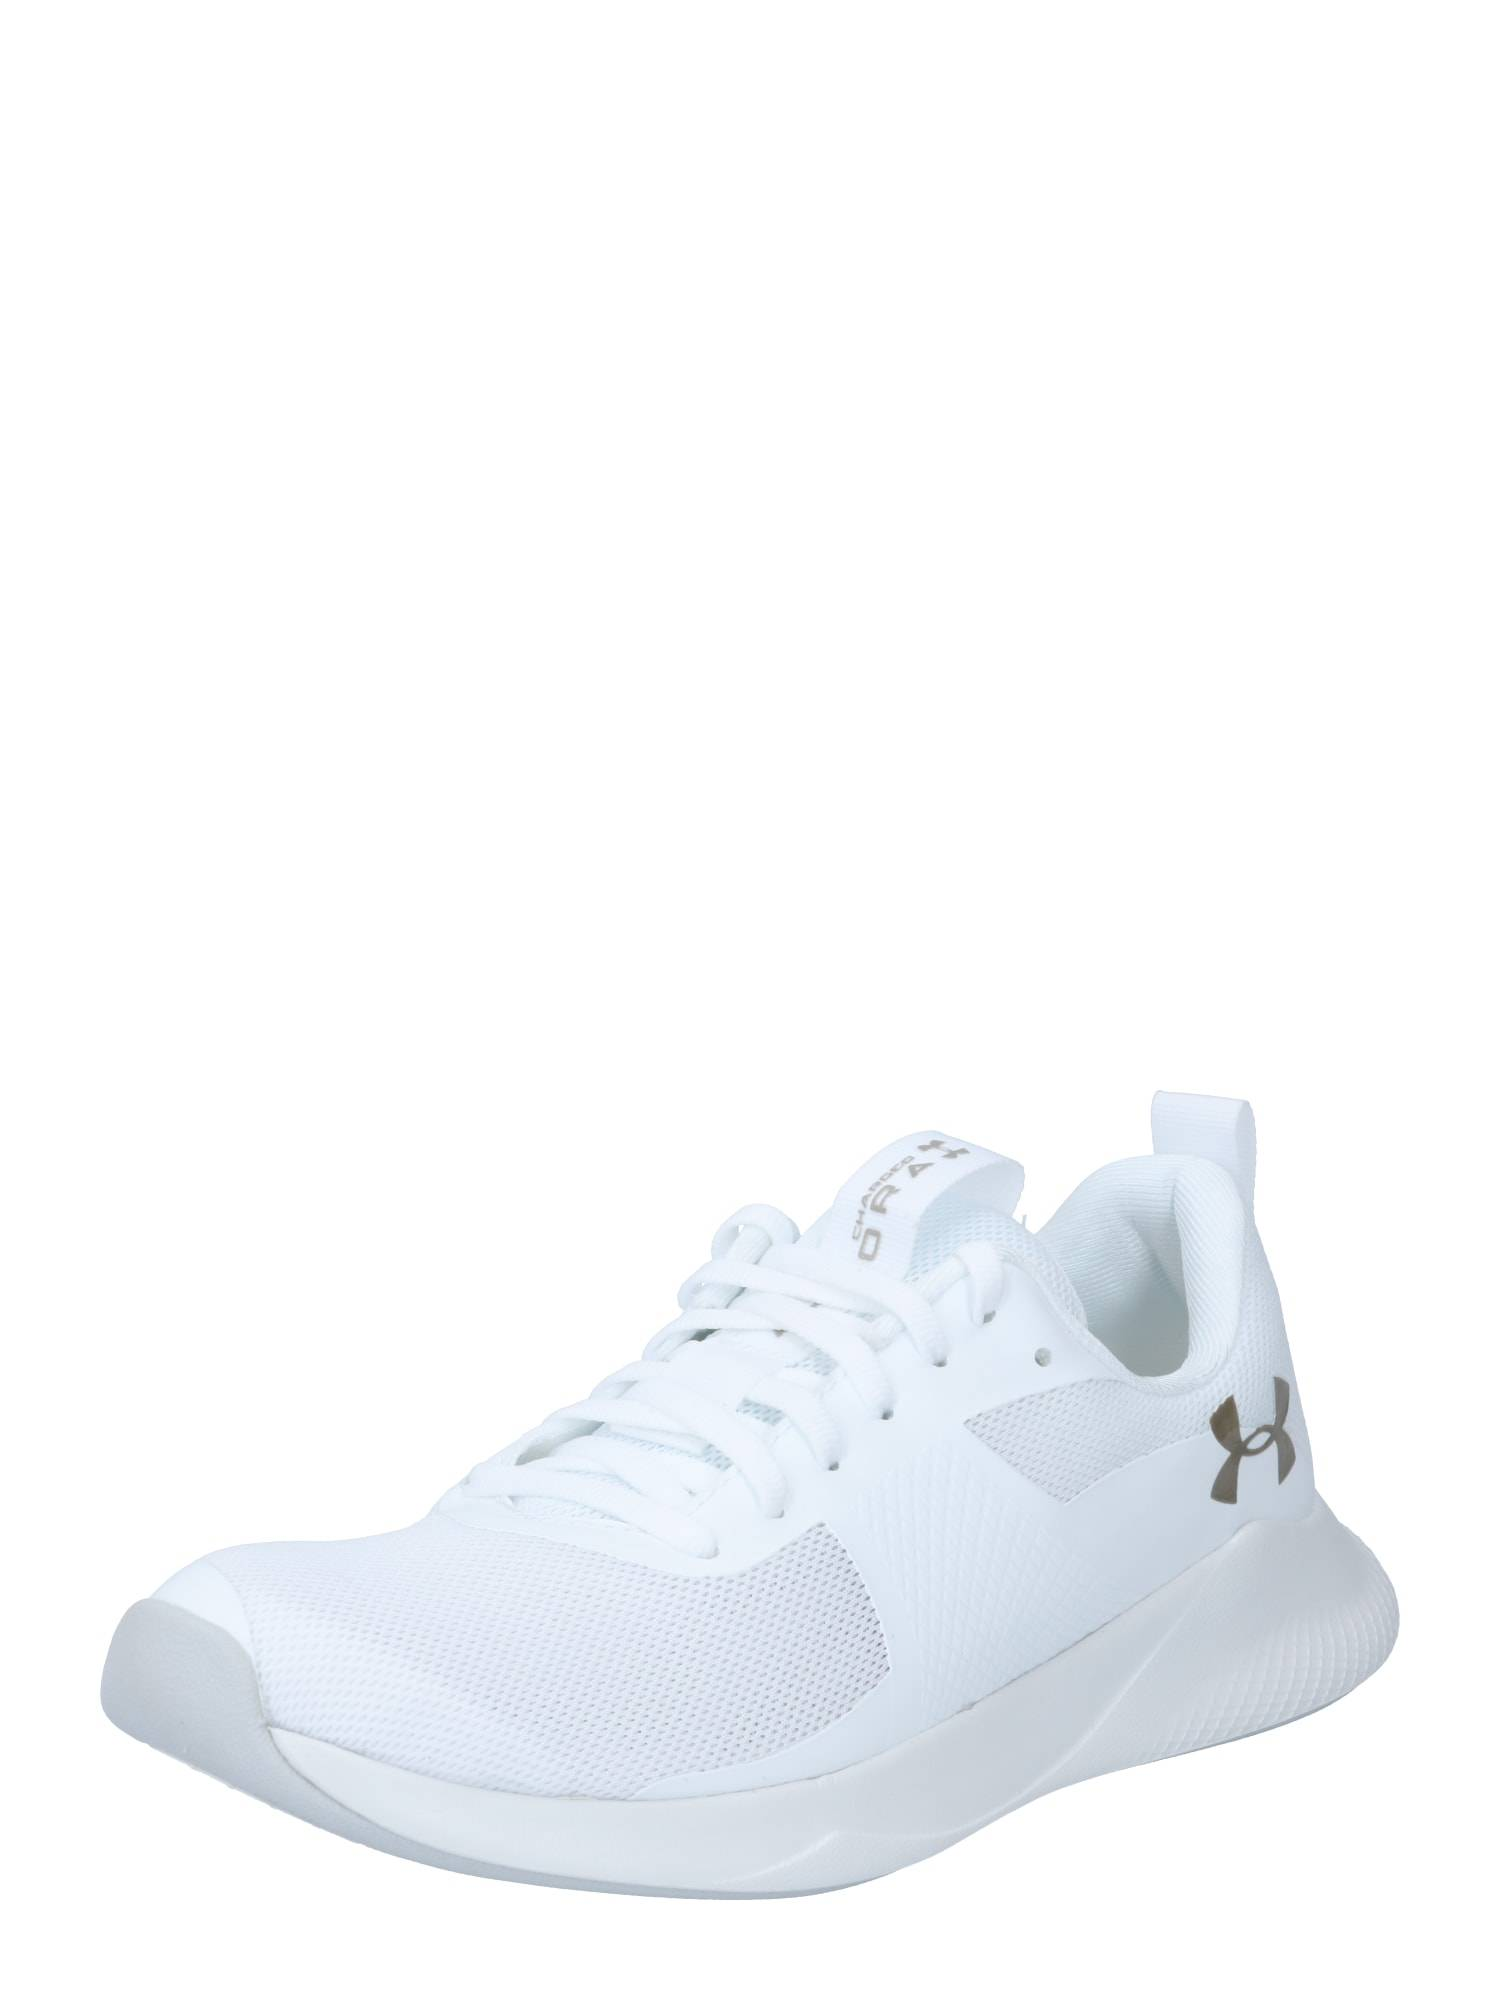 UNDER ARMOUR Chaussure de sport 'UA W Charged Aurora'  - Blanc - Taille: 6 - female